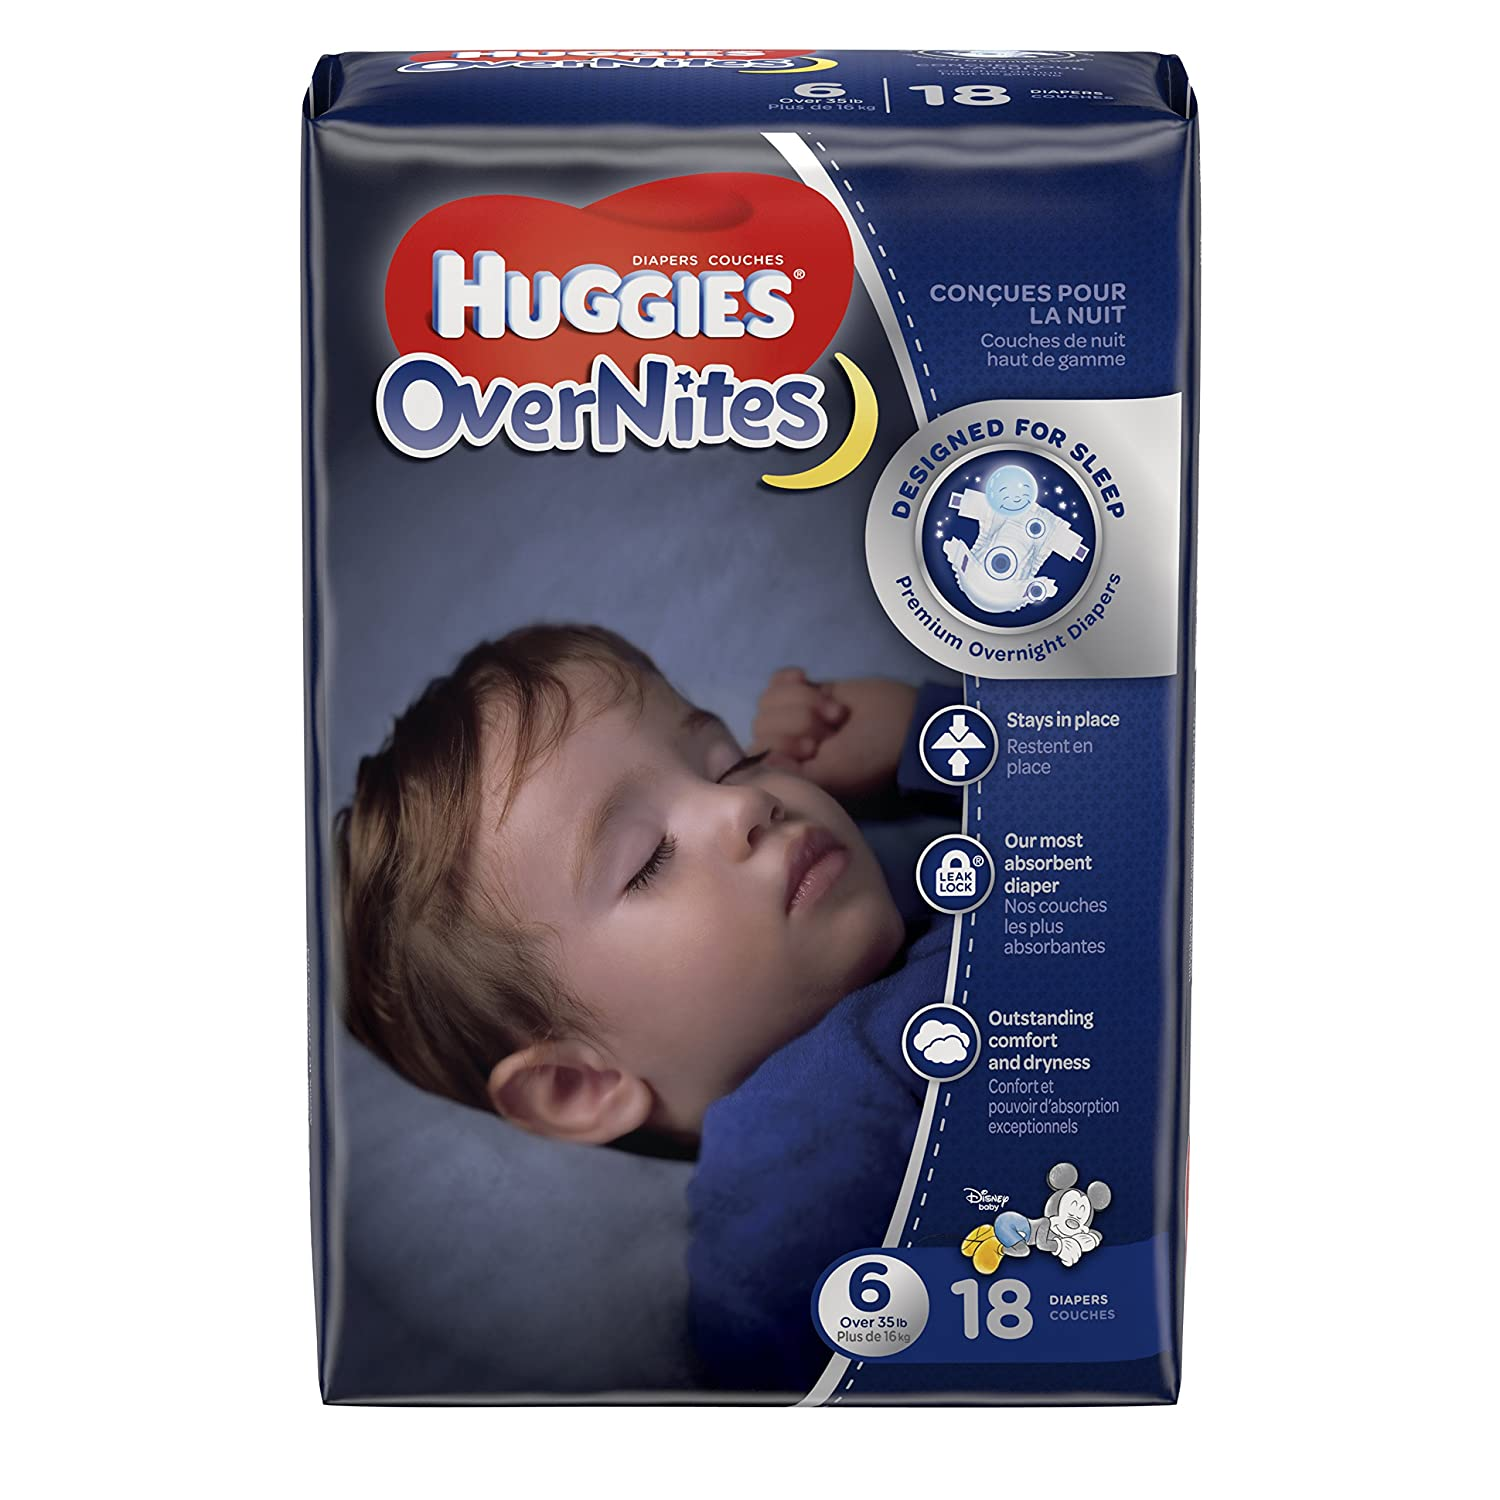 HUGGIES OverNites Diapers, Size 6, 18 ct, Overnight Diapers (Packaging May Vary) 10036000406853